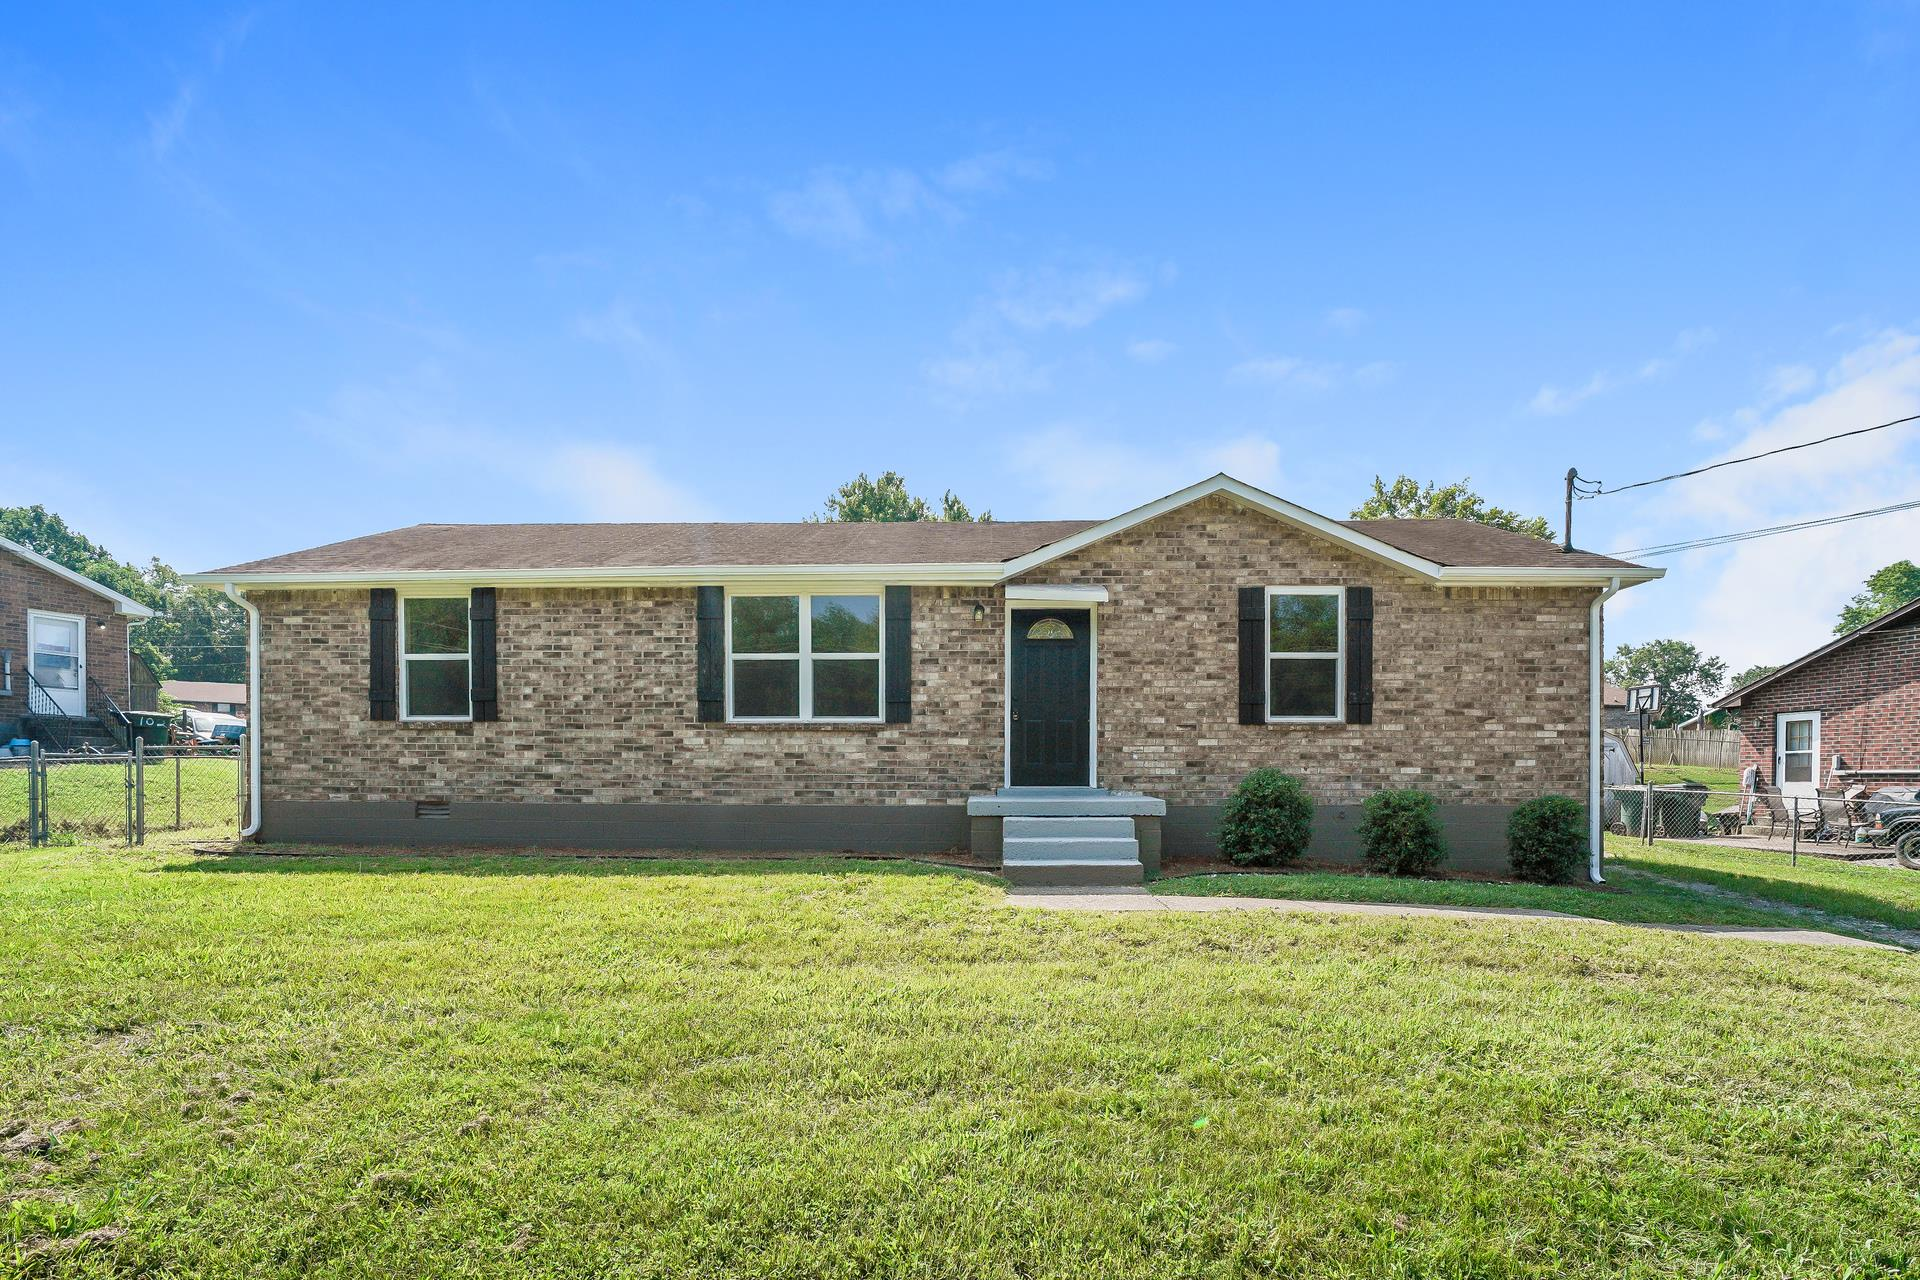 106 Creekside Ct 37066 - One of Gallatin Homes for Sale